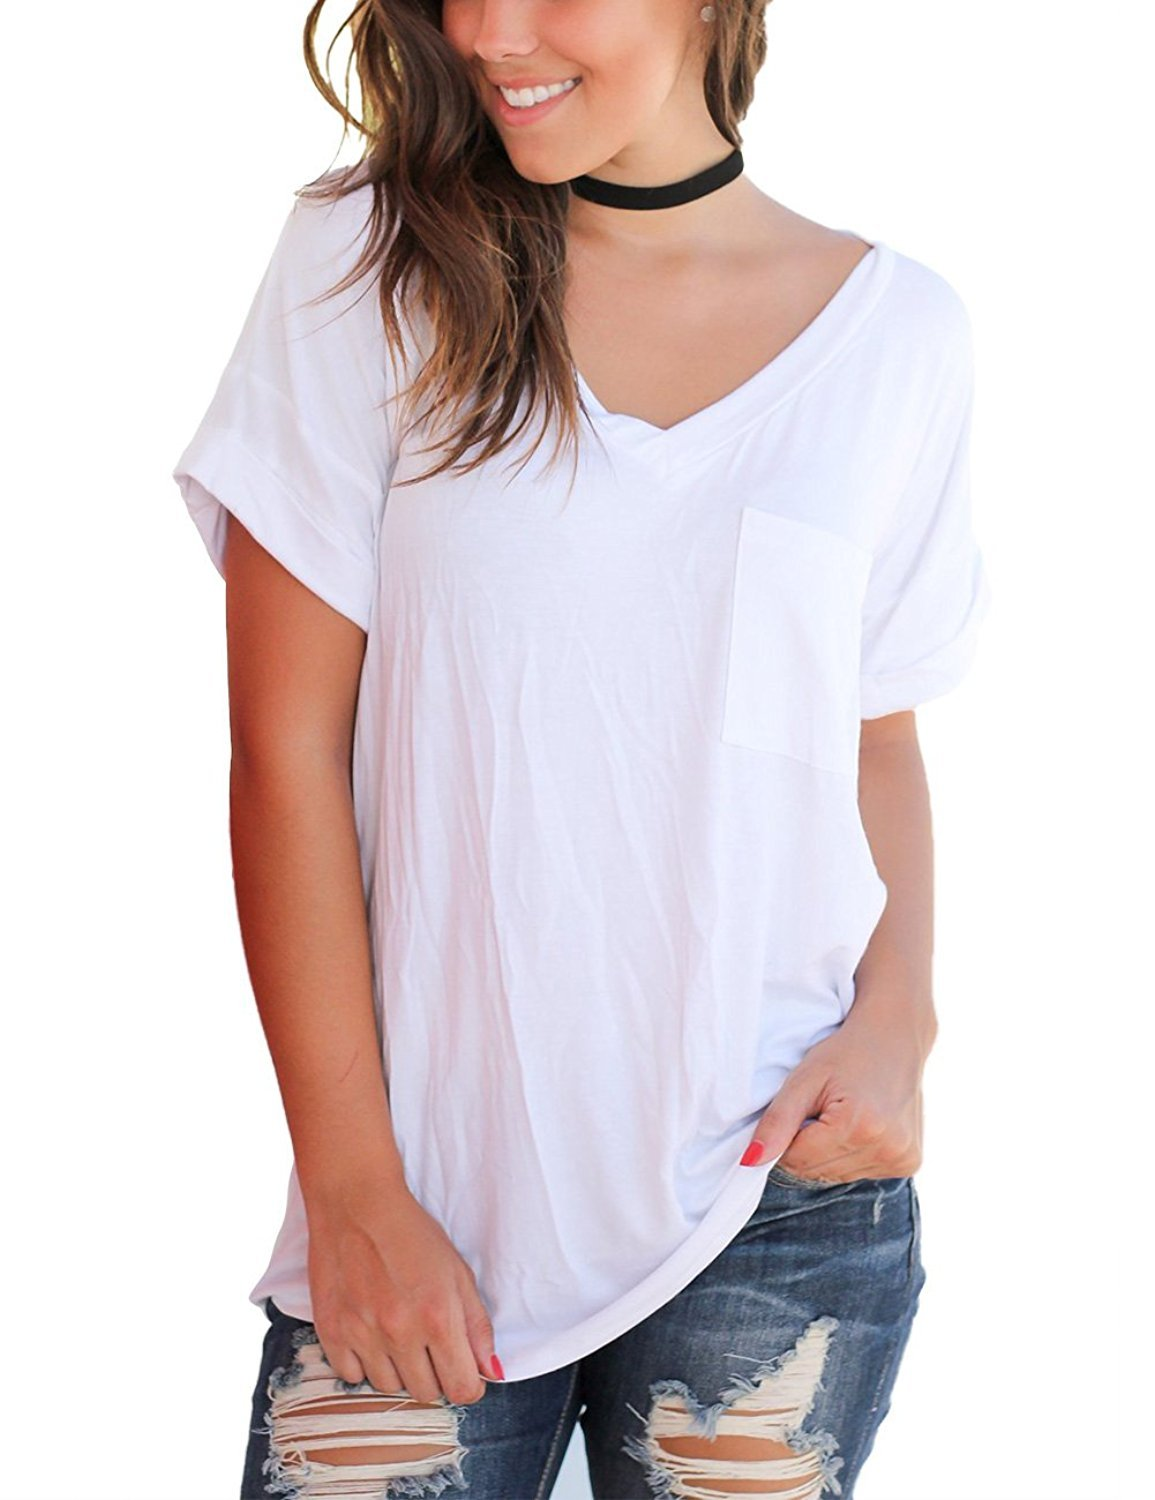 FAVALIVE Womens Tops Short Sleeve Cotton Tees Casual V Neck T Shirts Plus Size White XXL